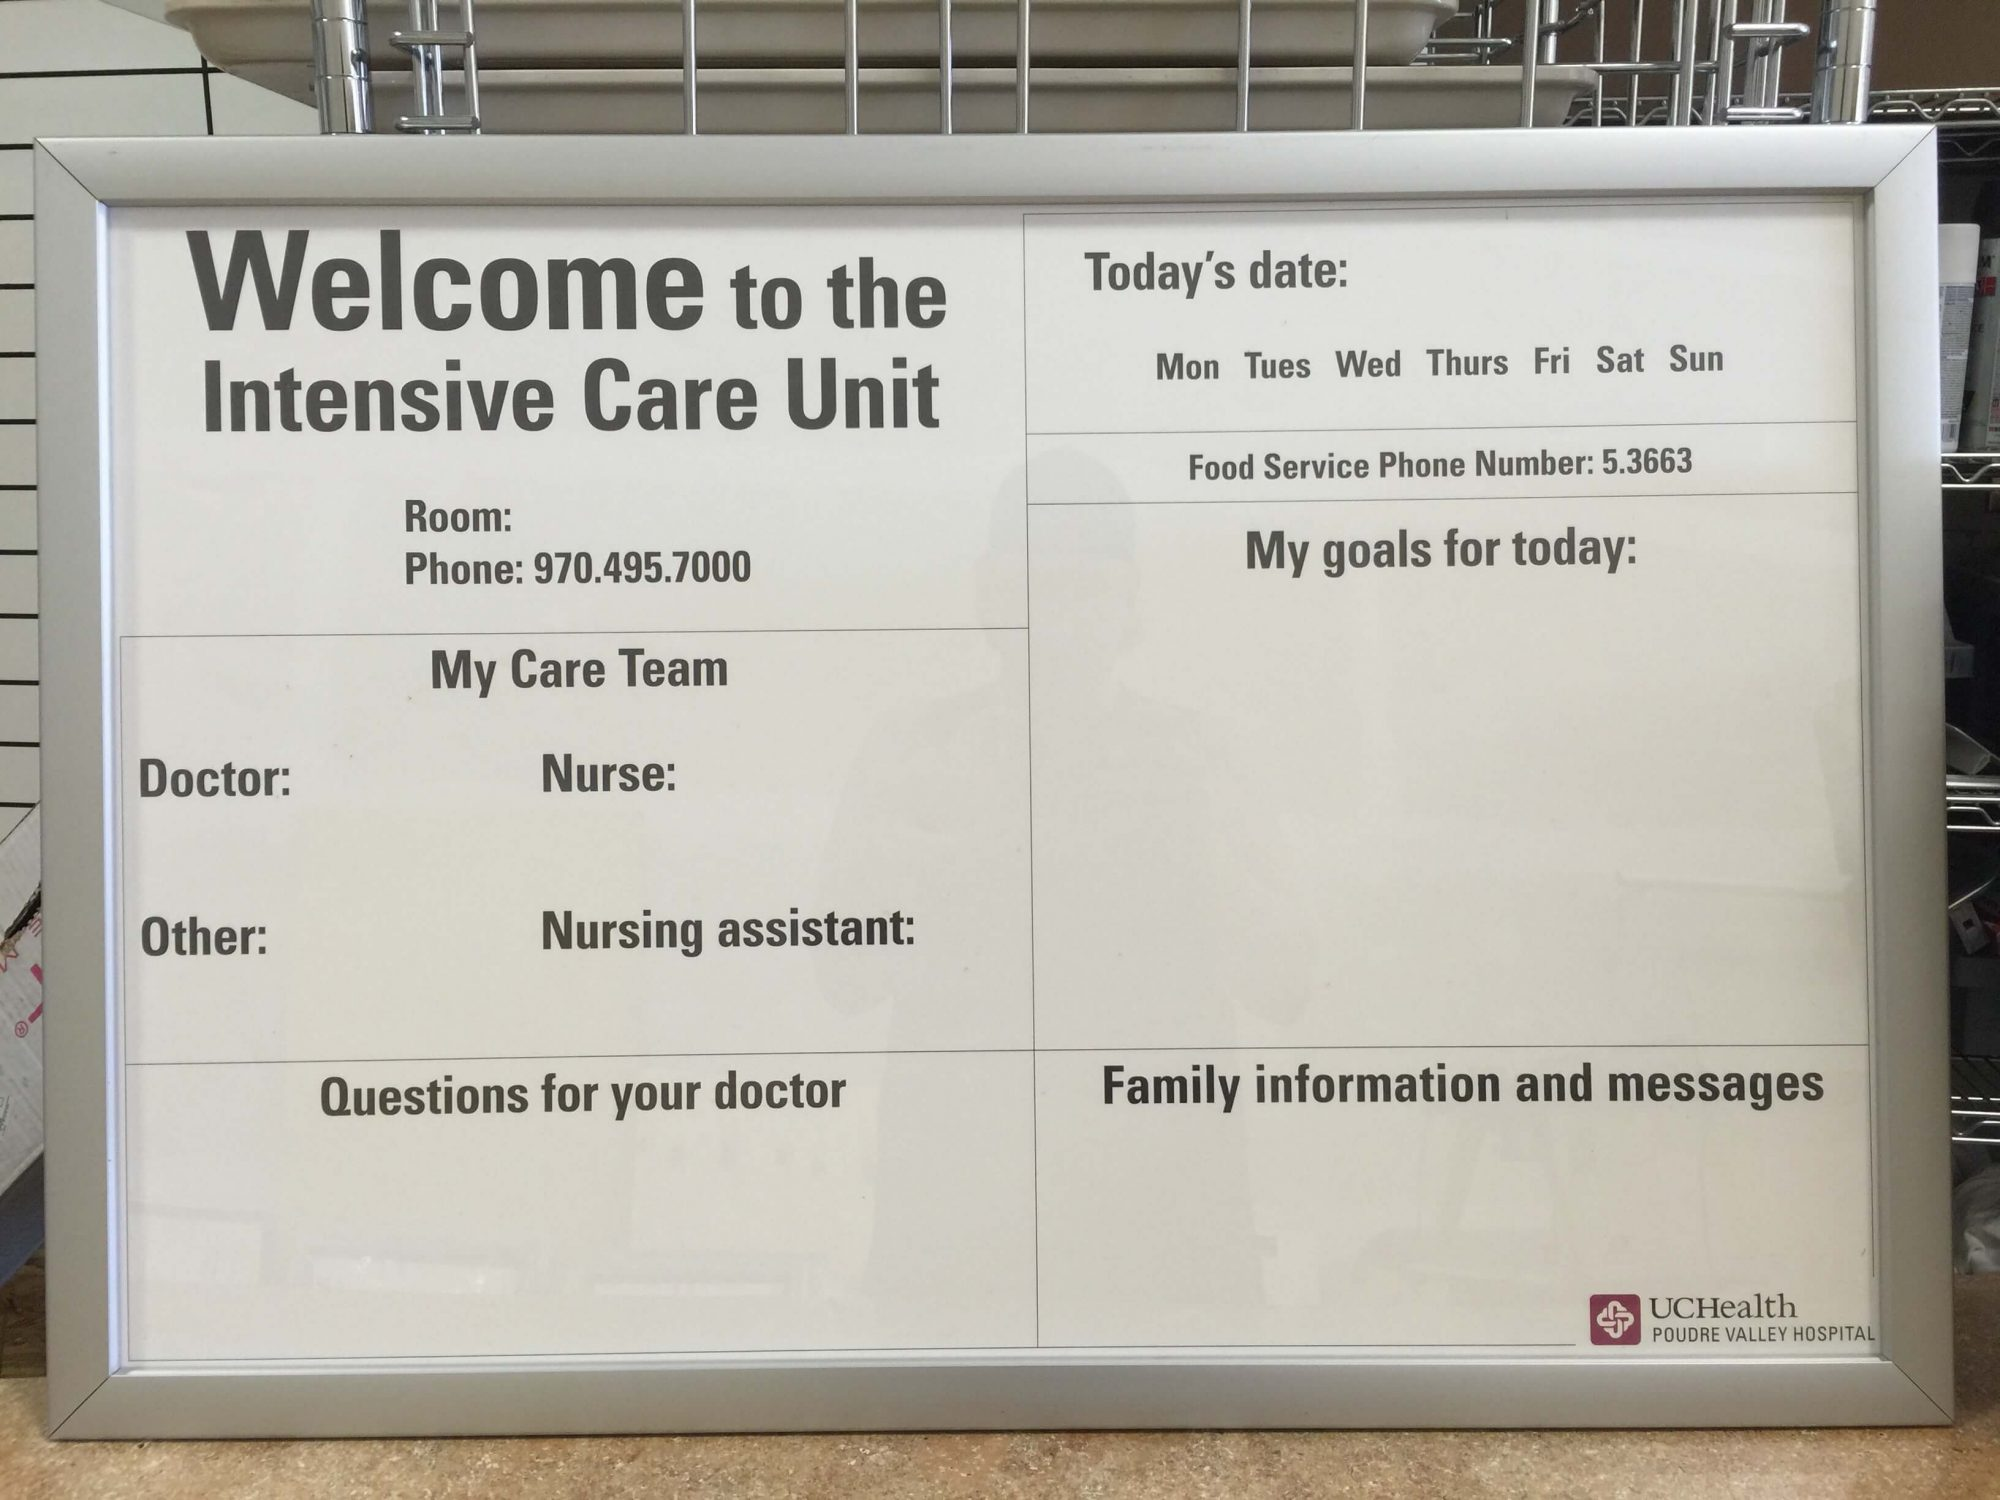 Patient Communication Whiteboards - Stay Up To Date | Simple